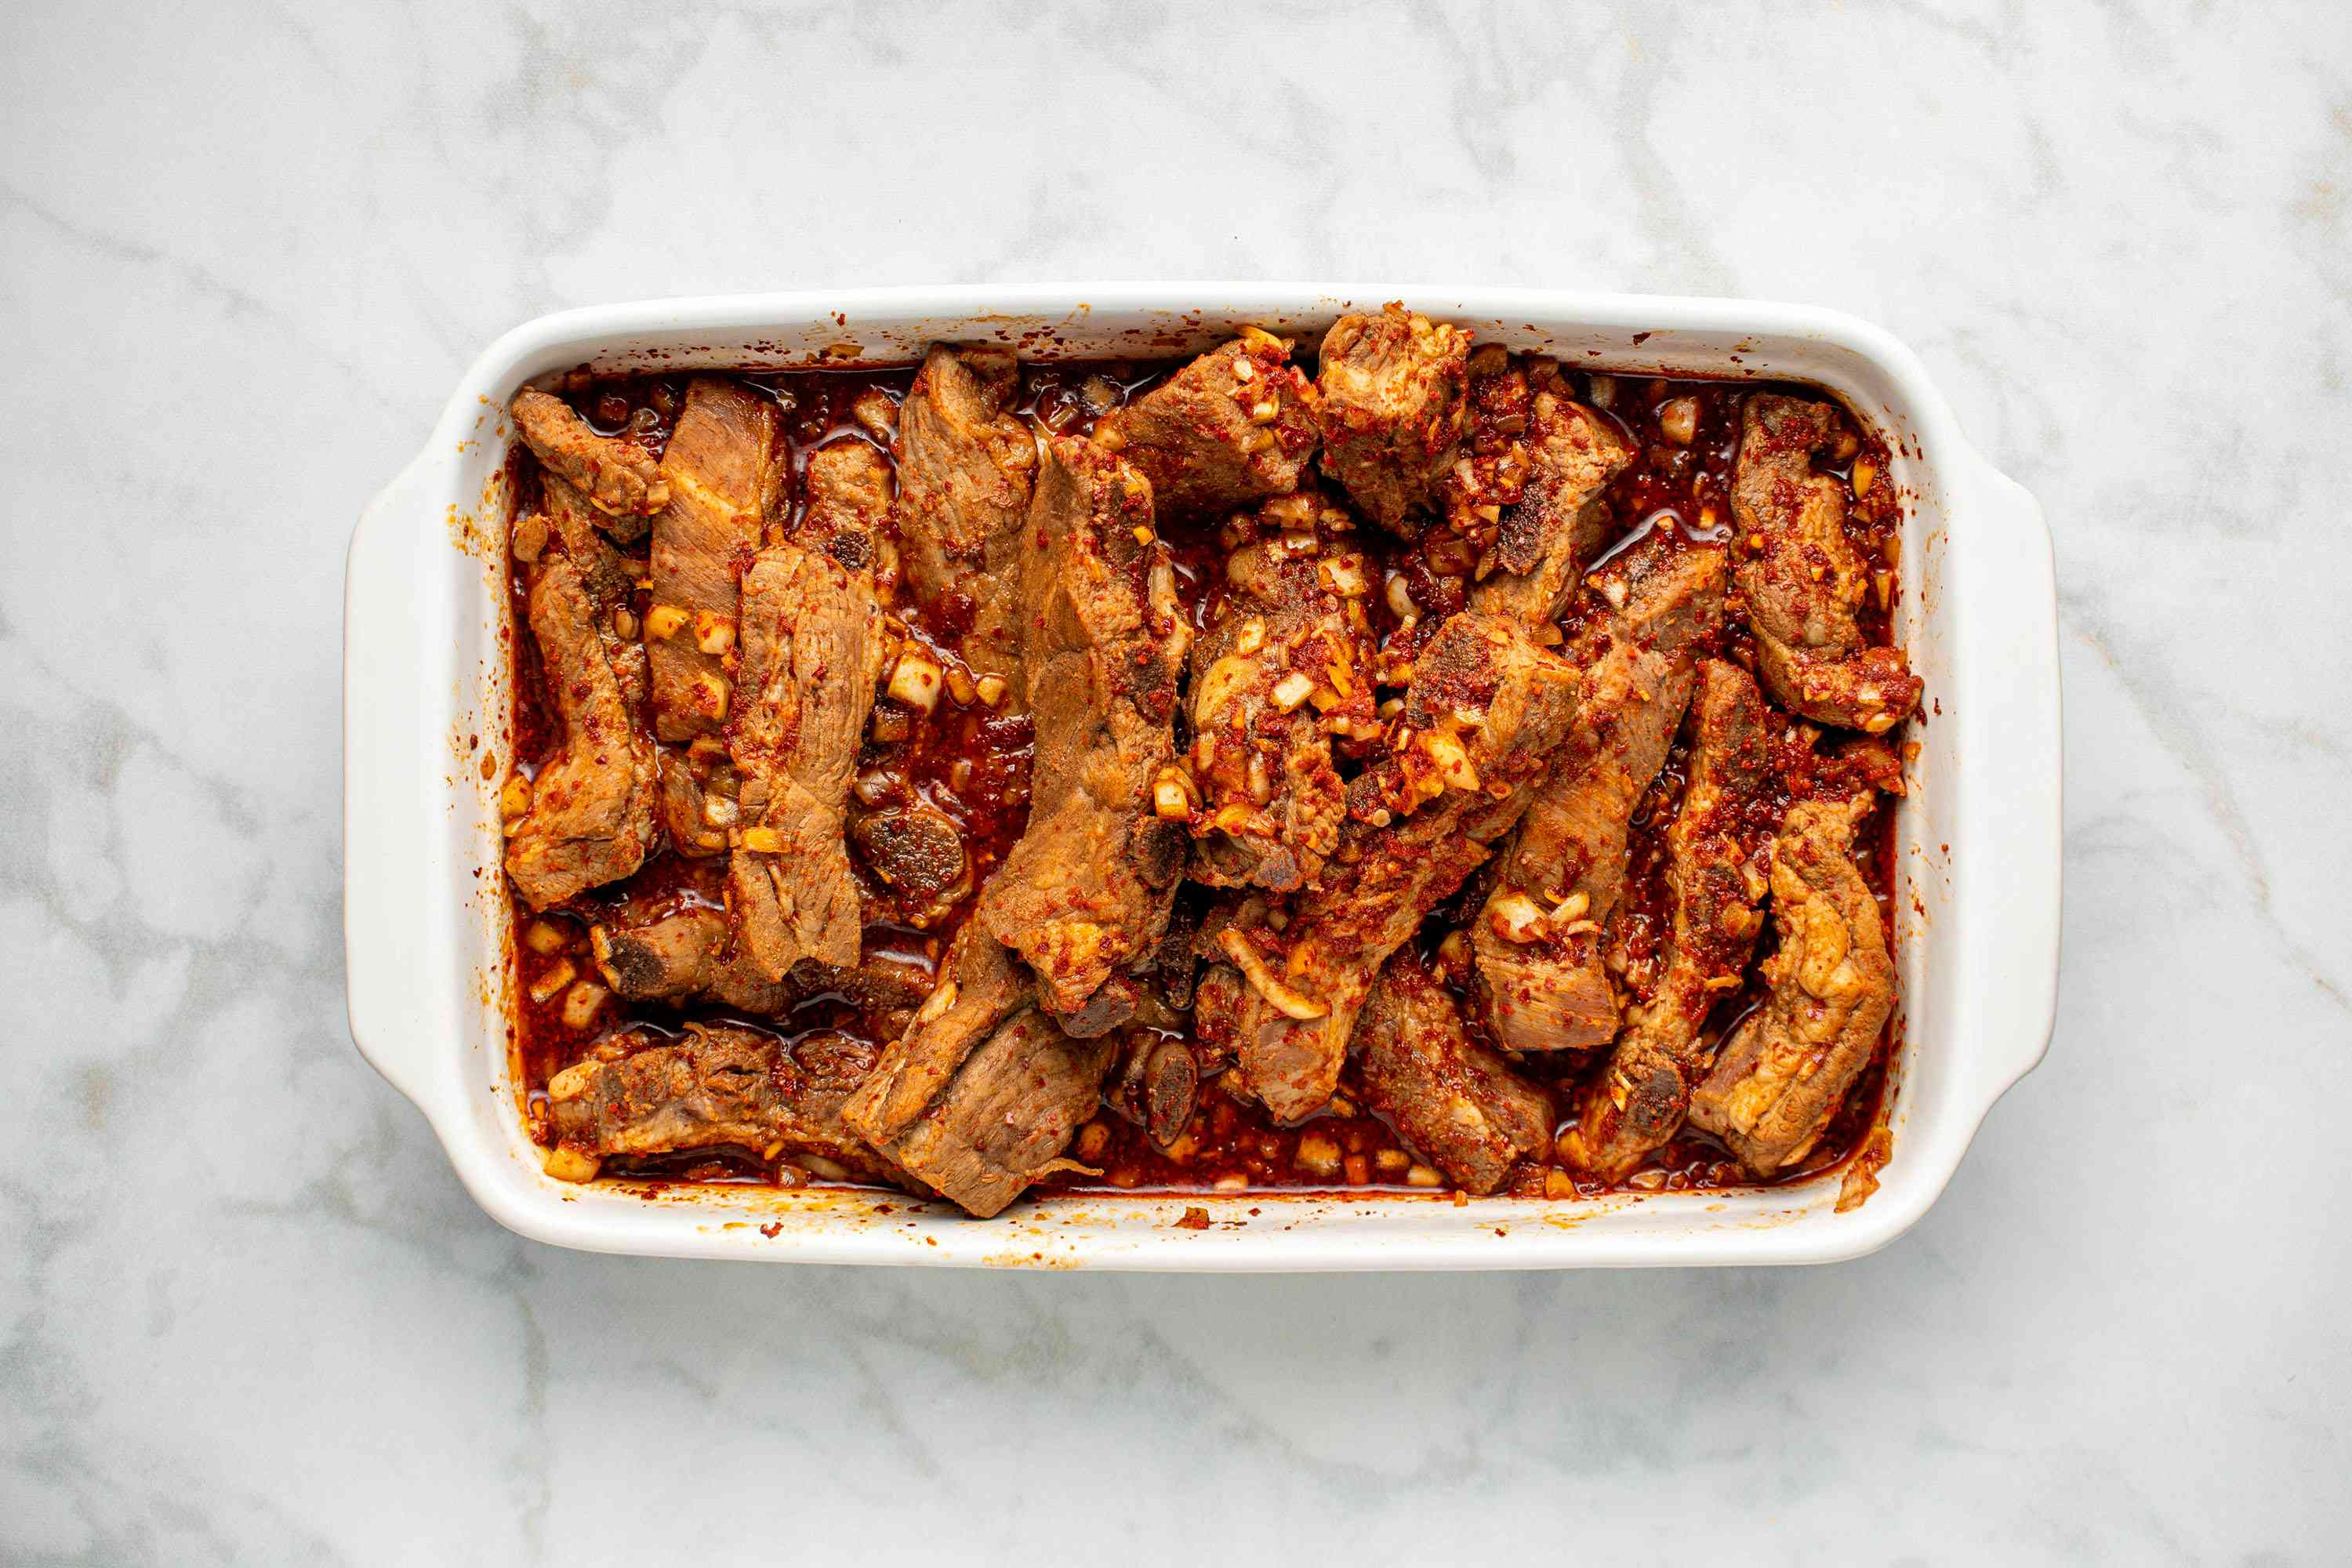 meat and marinade in a baking dish